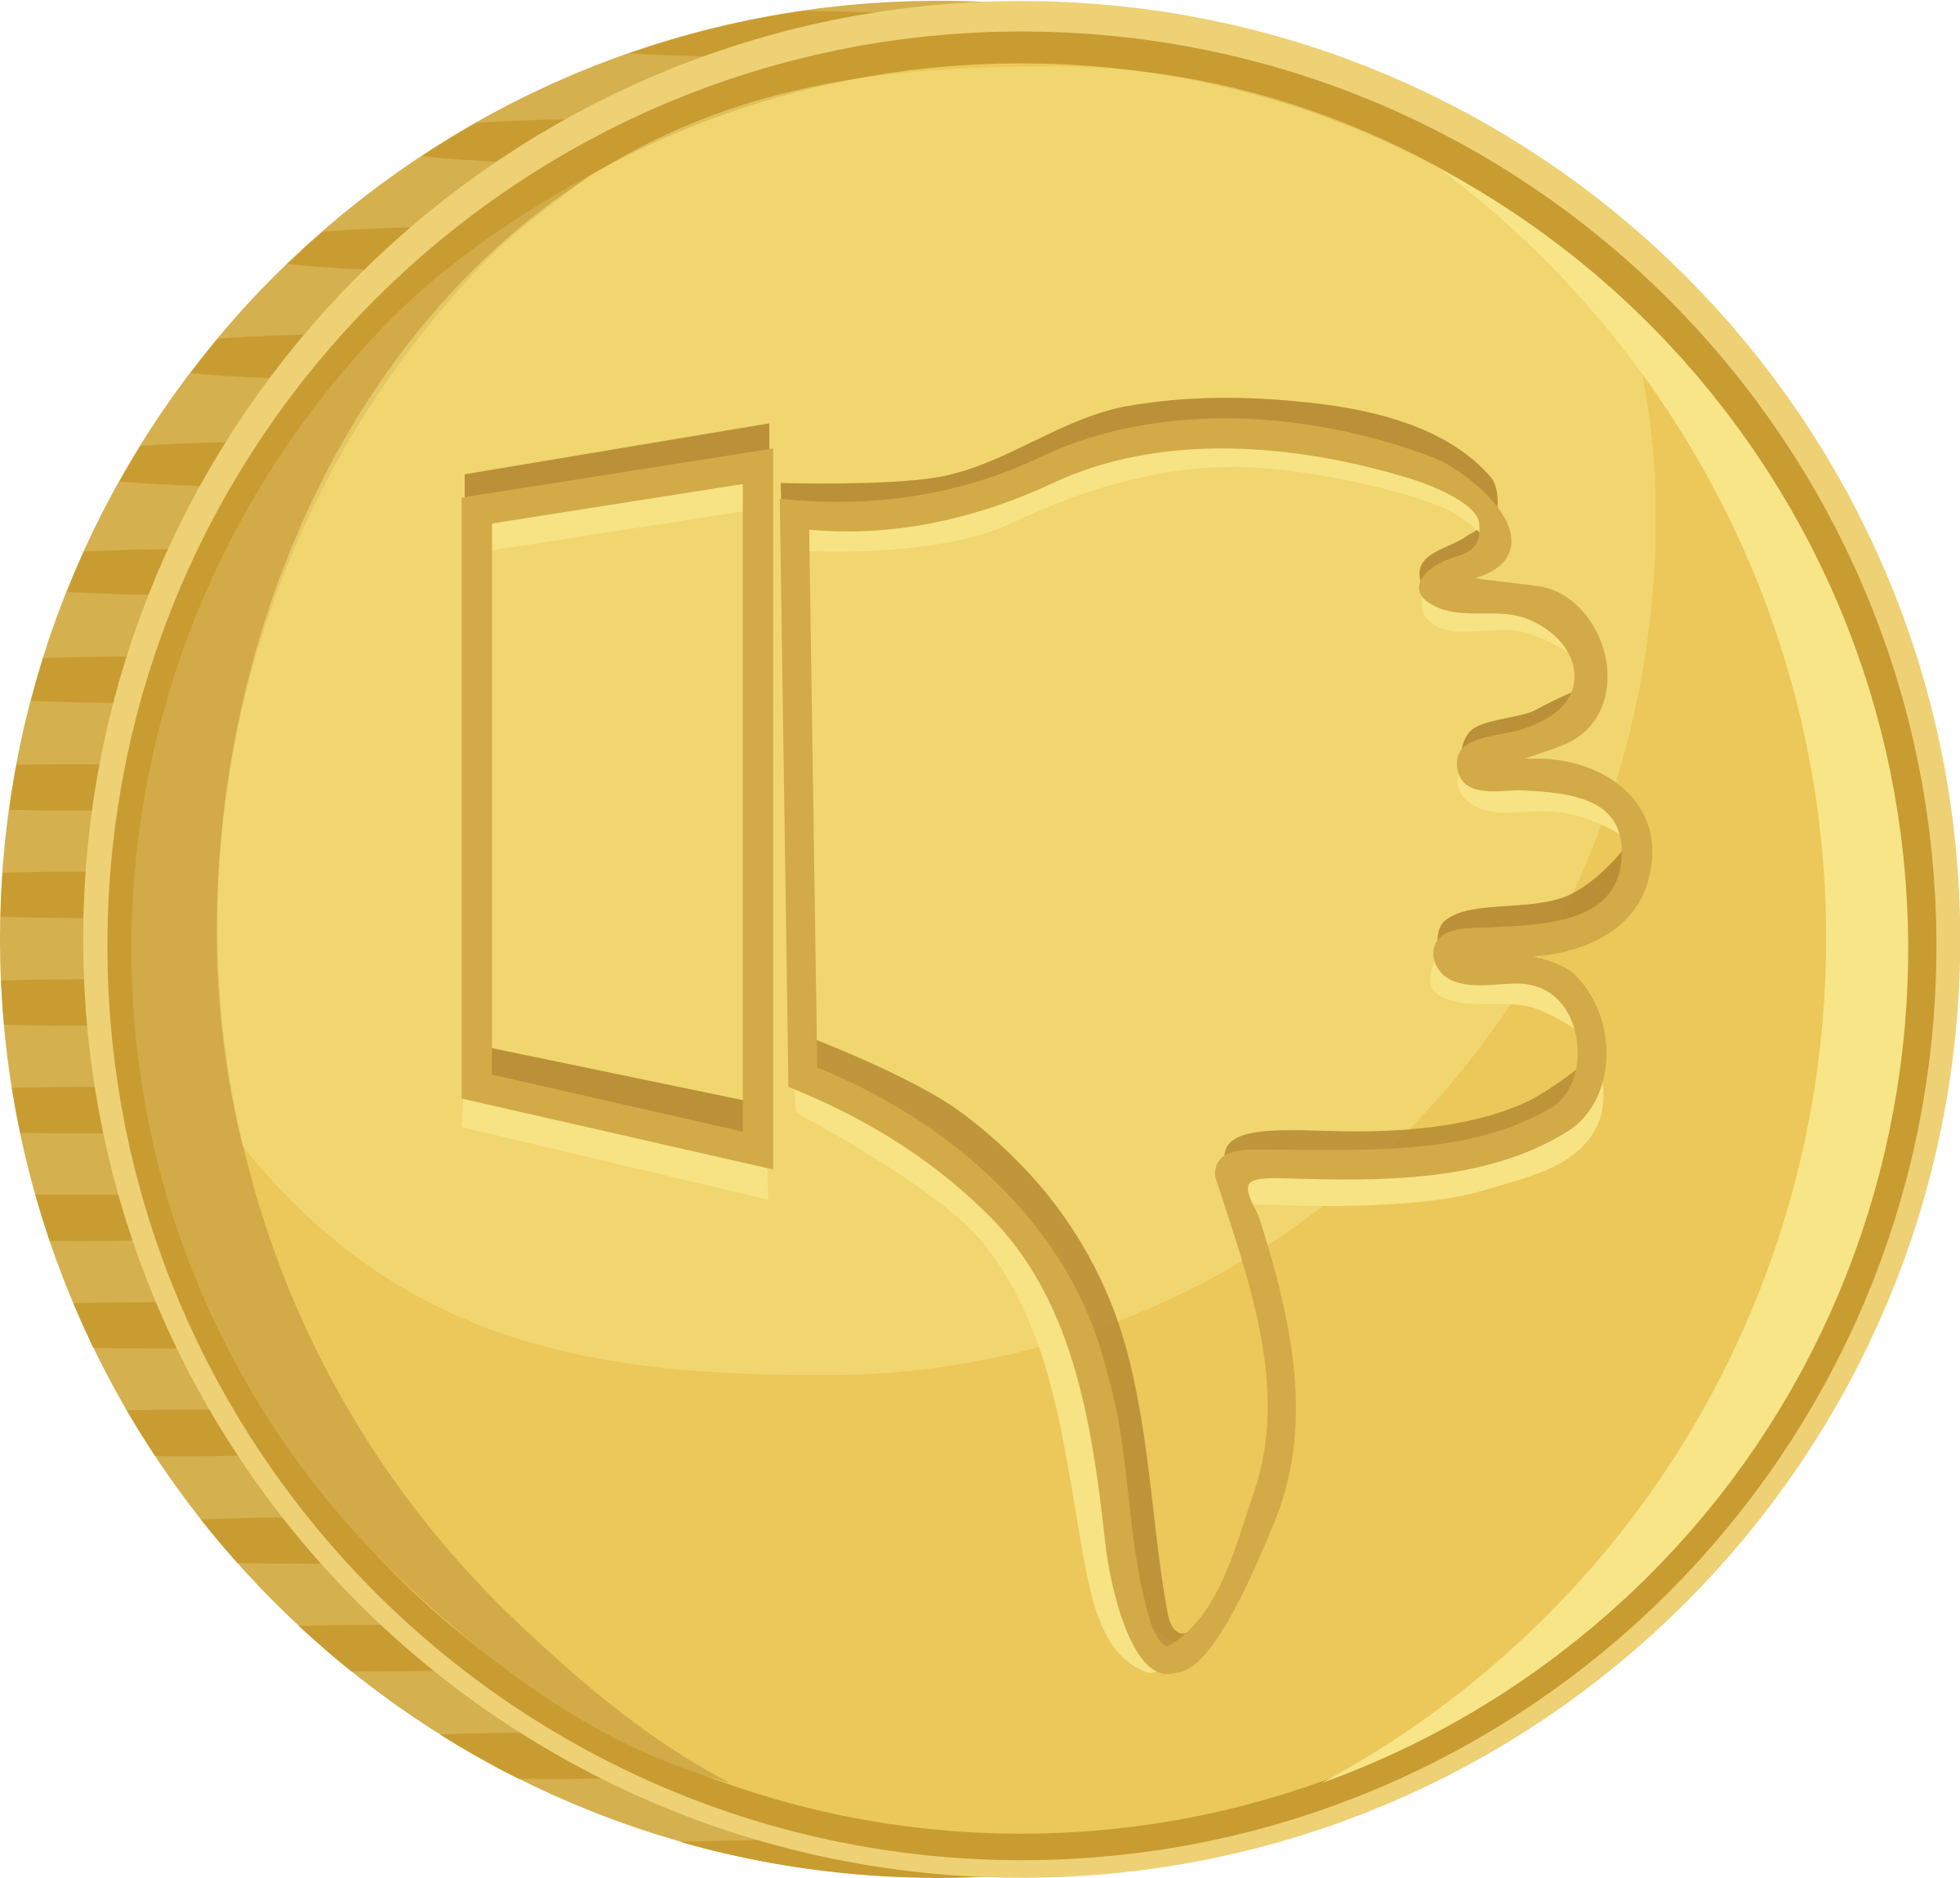 Thumbs down big image. Coin clipart svg